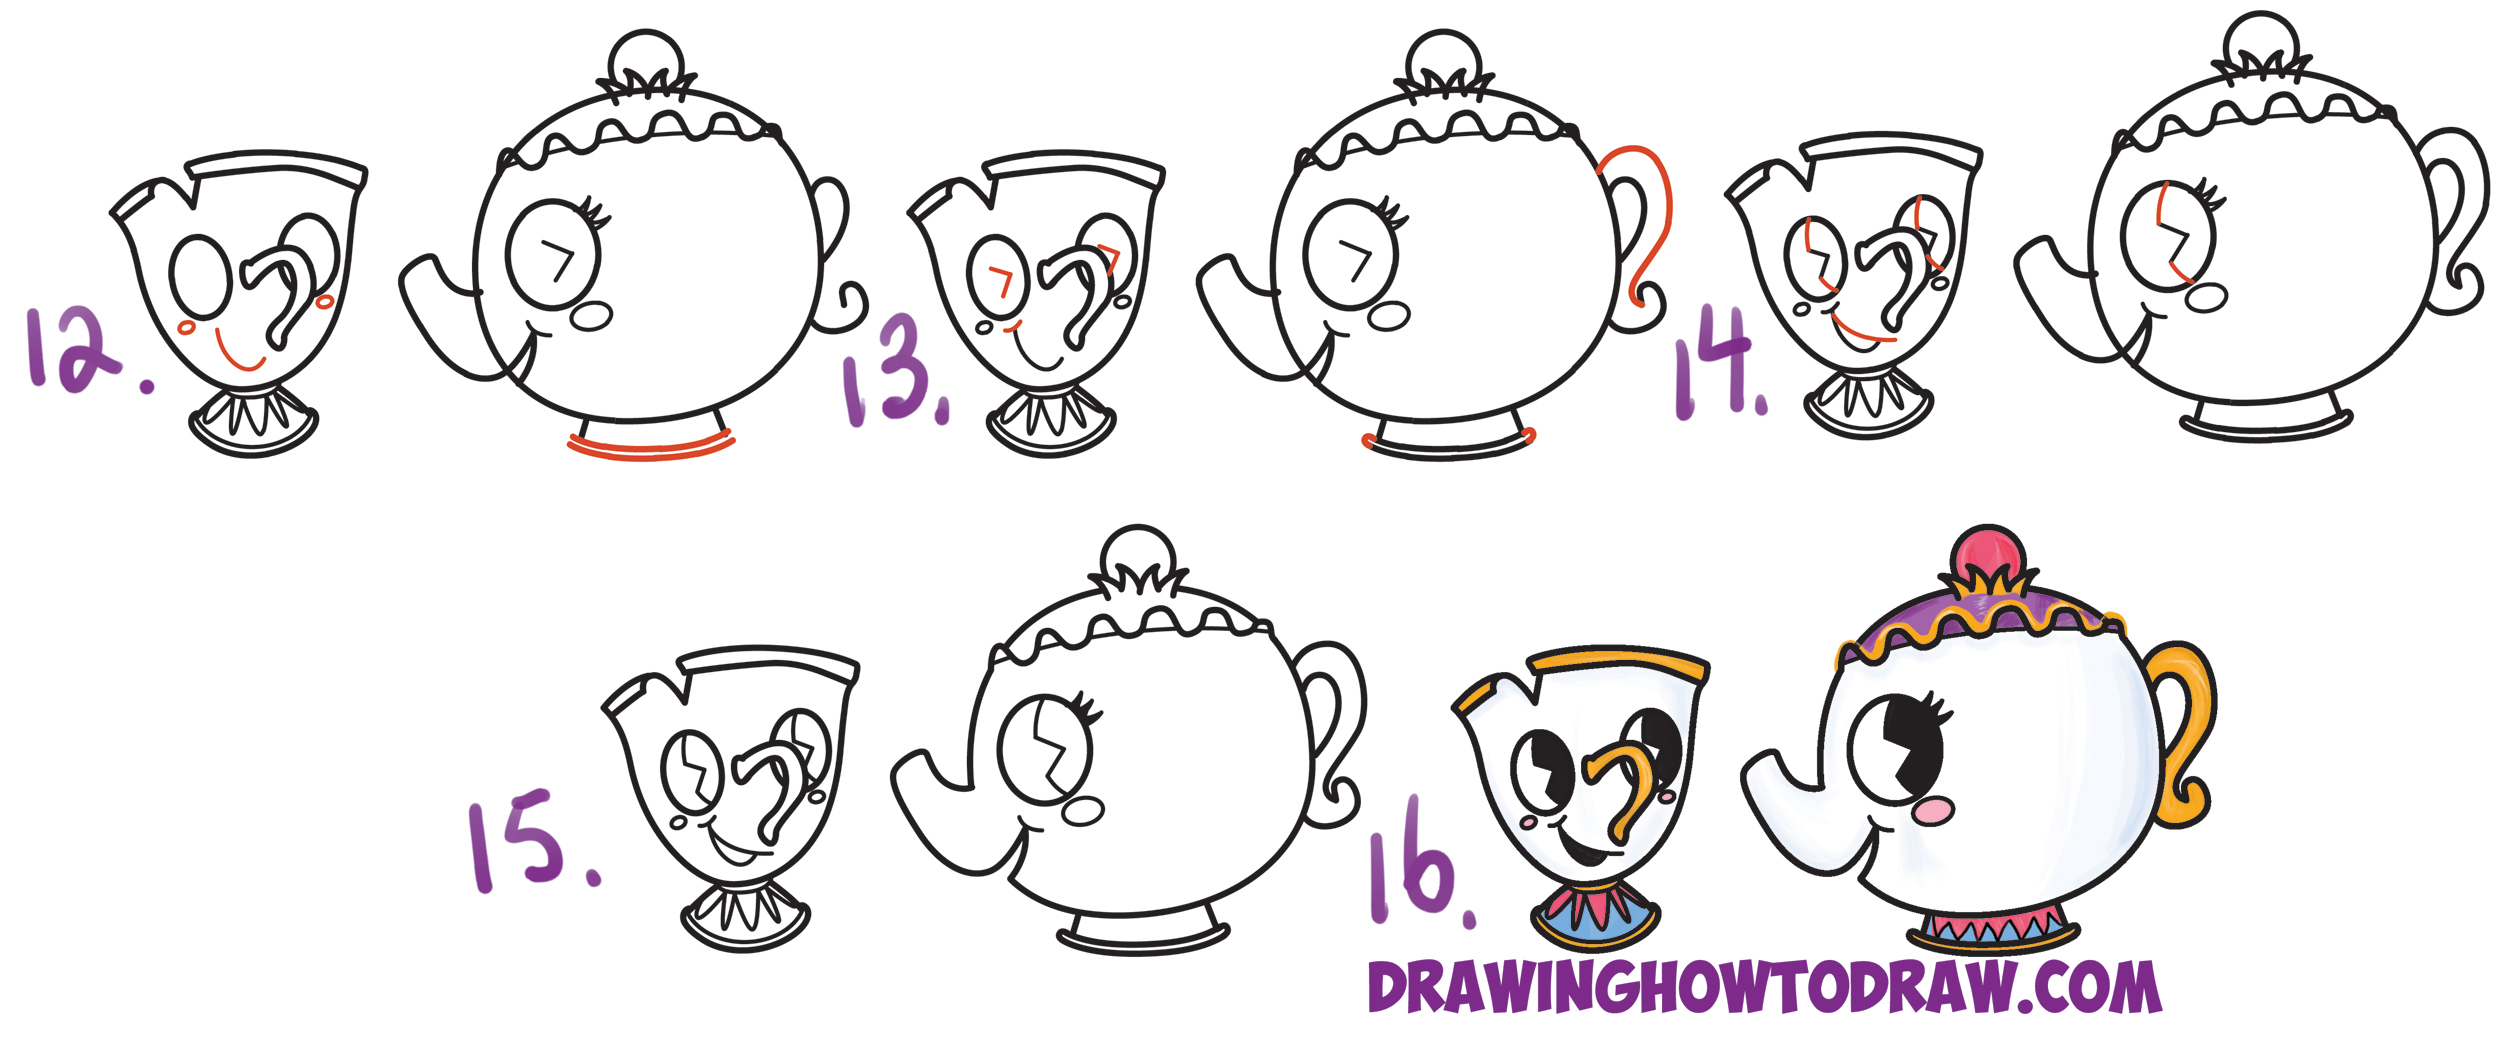 Learn How To Draw Cute Kawaii Chibi Mrs Potts And Chip From Beauty